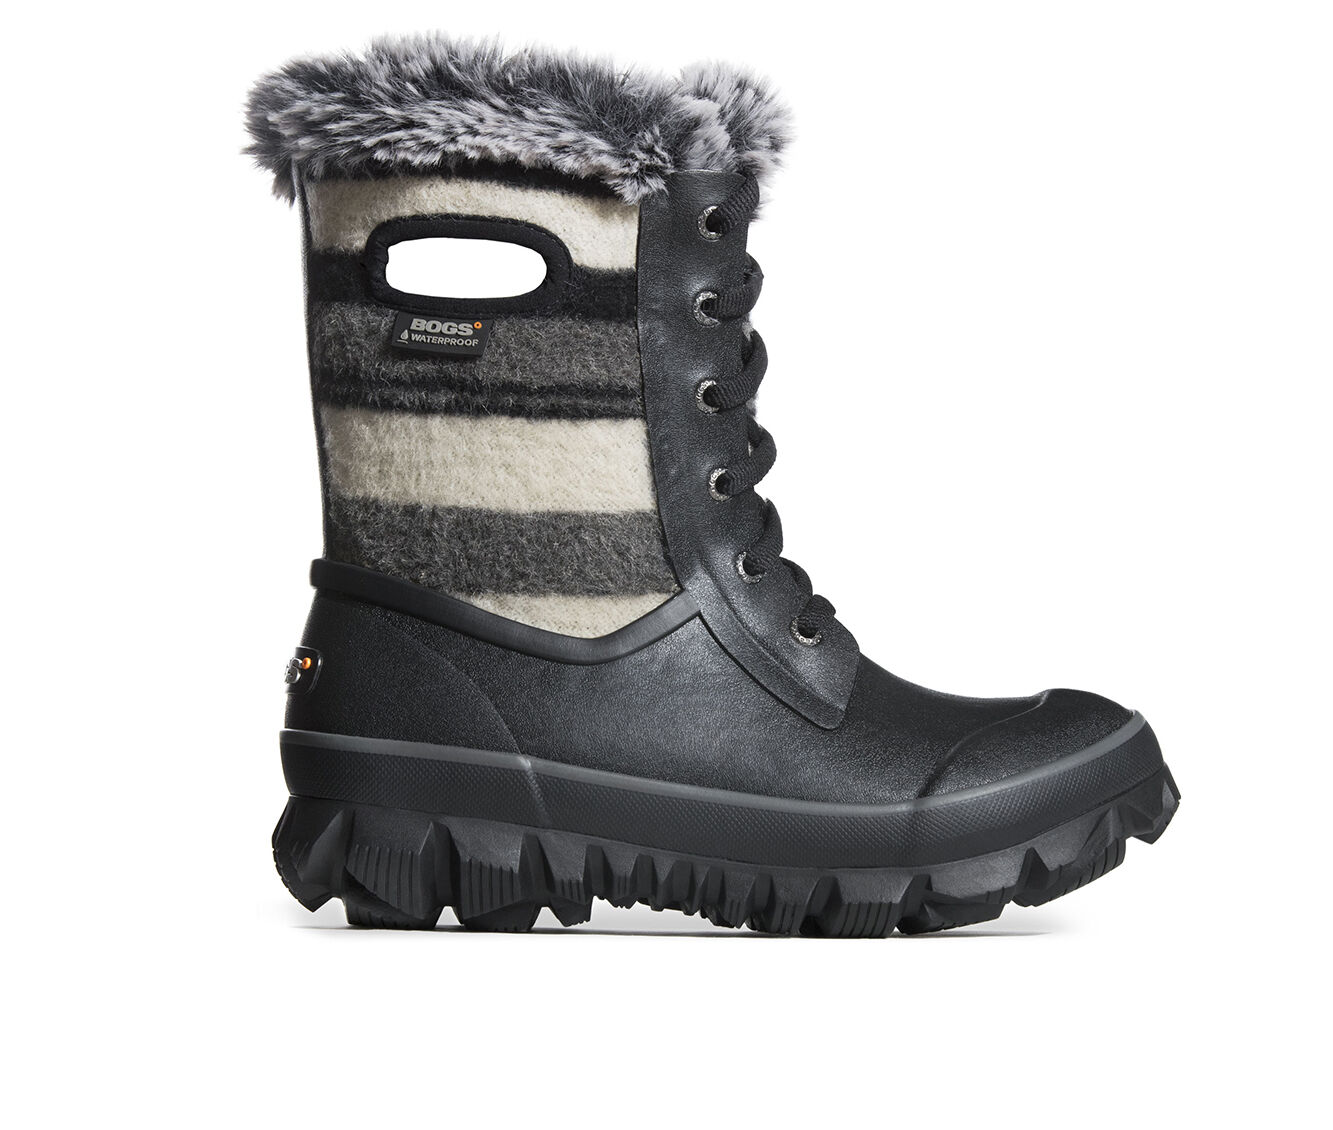 Women's Bogs Footwear Arcata Lace Stripe Winter Boots Black Multi